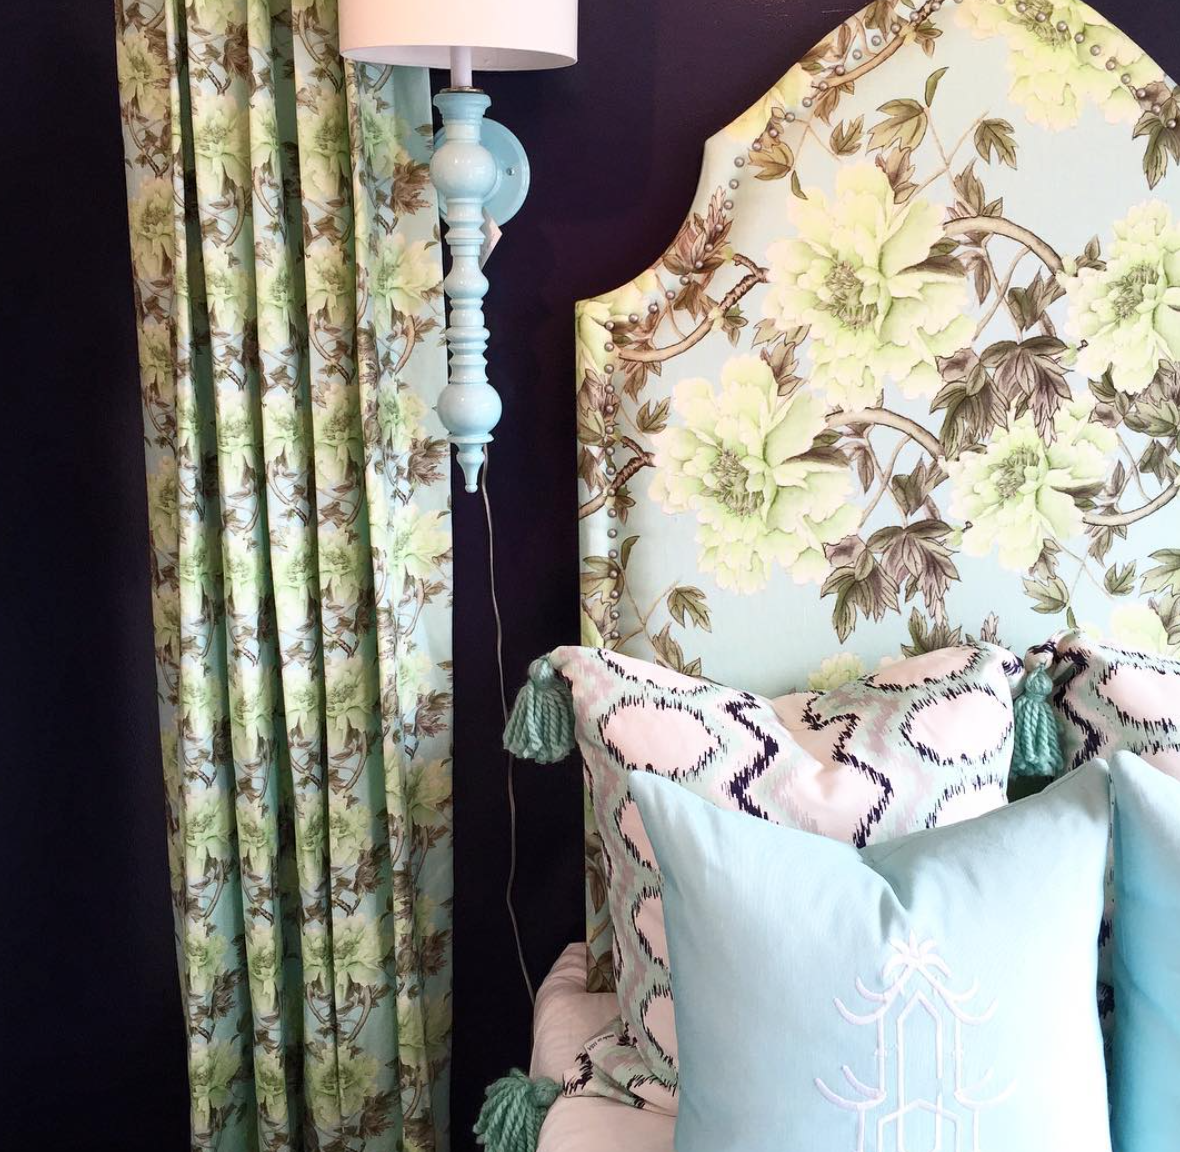 Handley Breaux Designs | After Hours at the Gardens | Cotton & Quill | Antiques at the Gardens | Birmingham Events